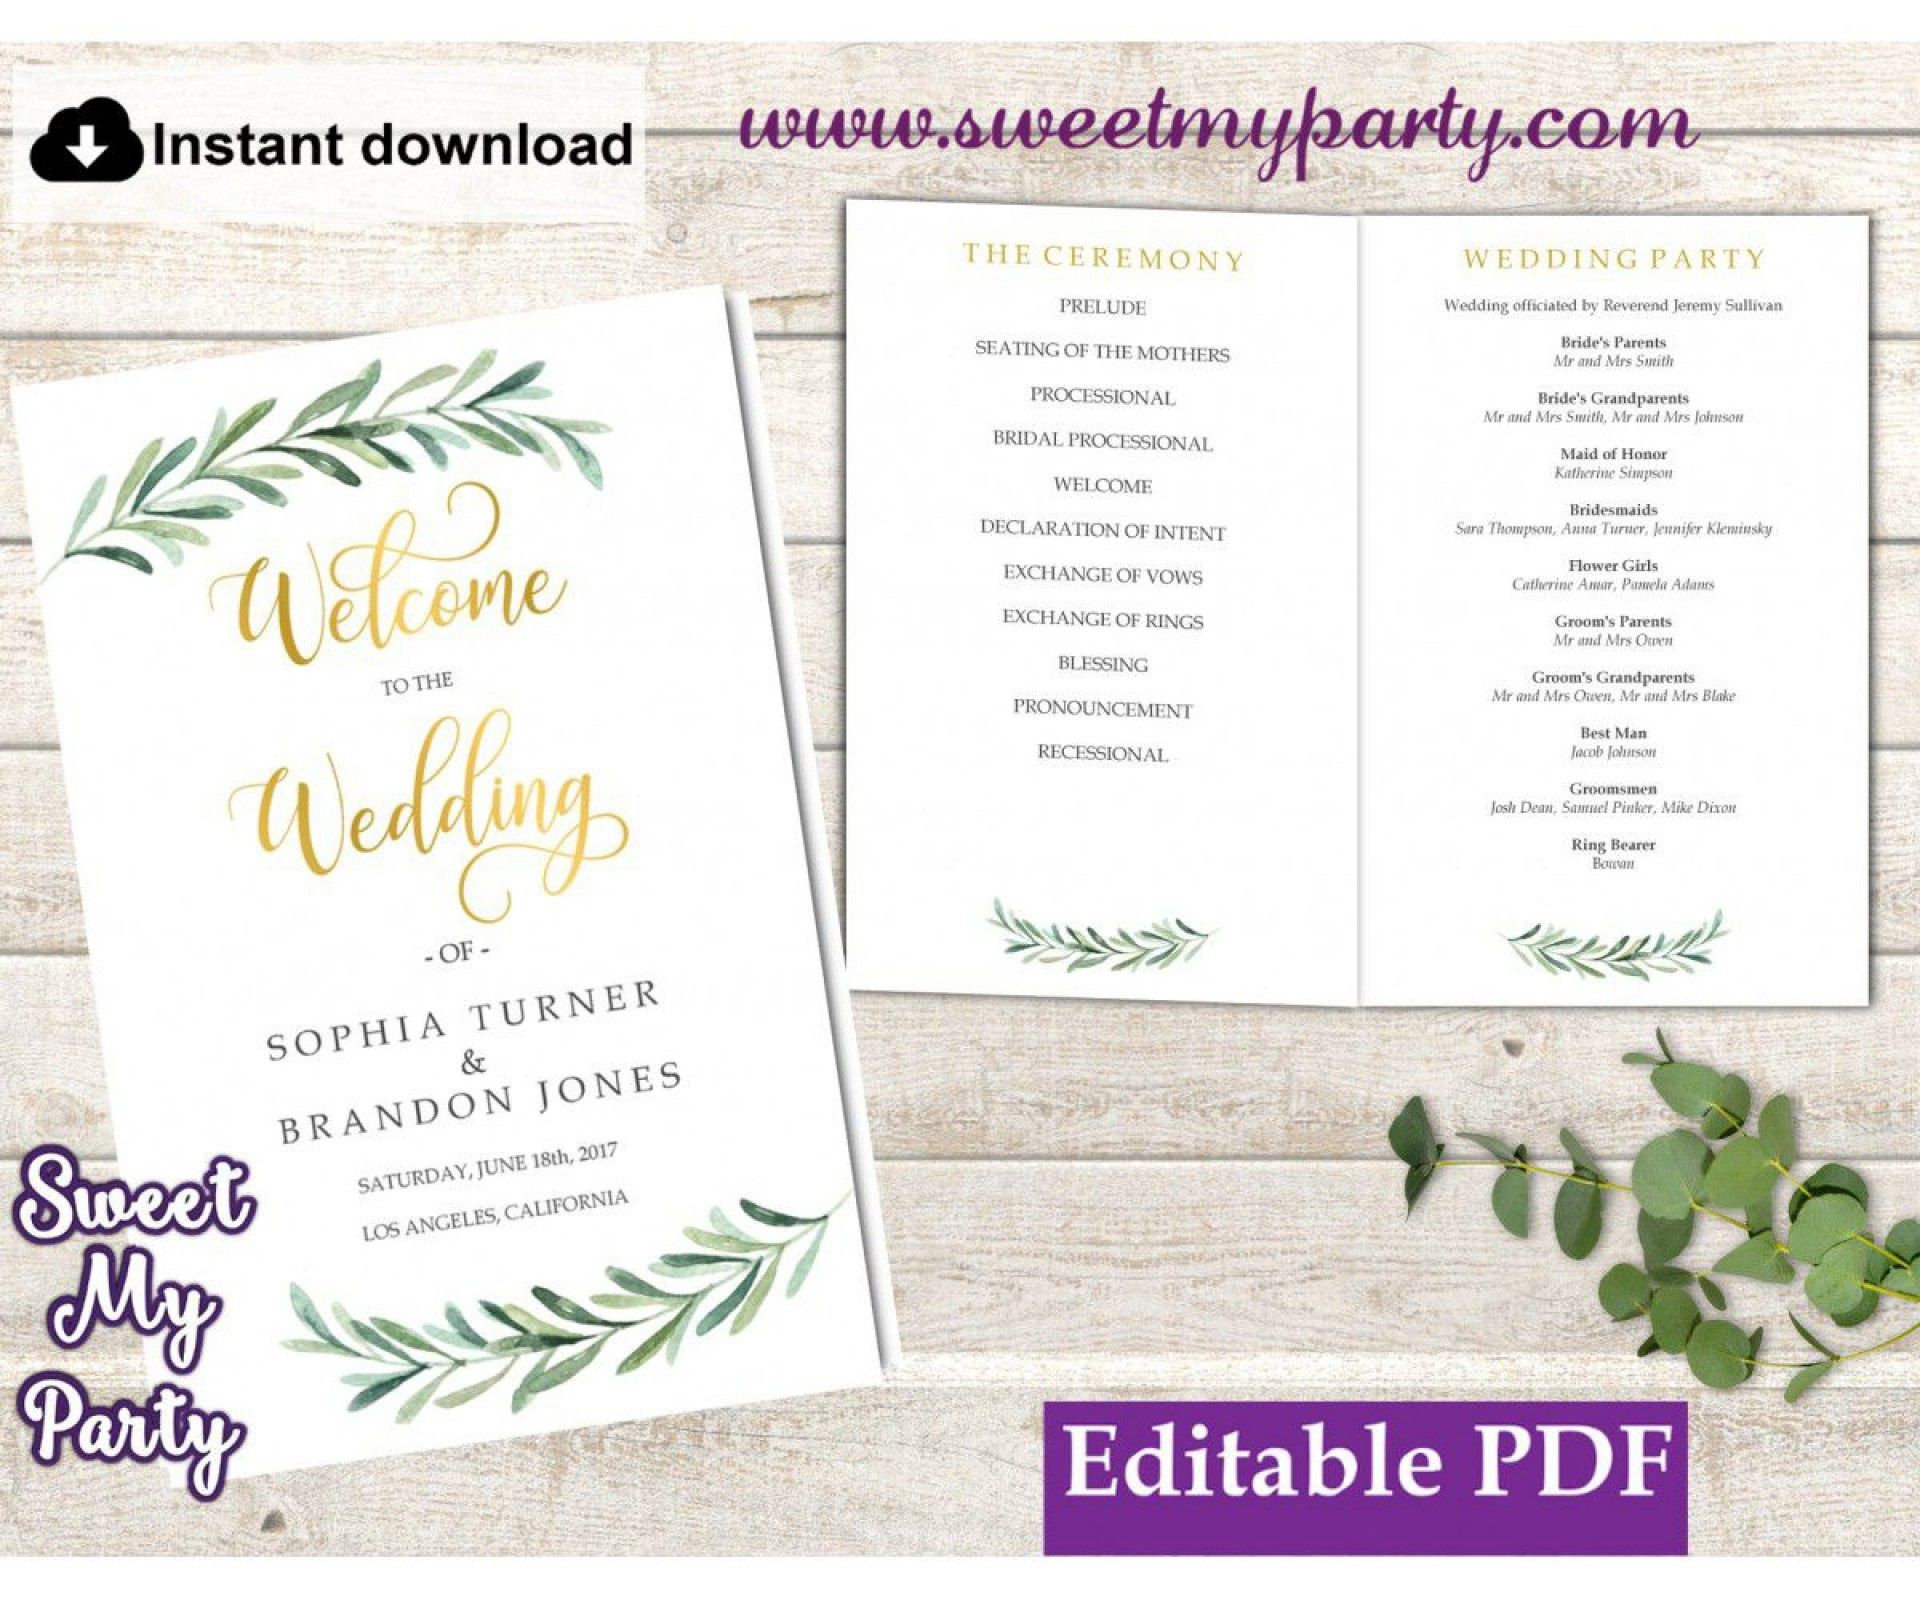 009 Simple Wedding Order Of Service Template Free High Definition  Front Cover Download ChurchFull